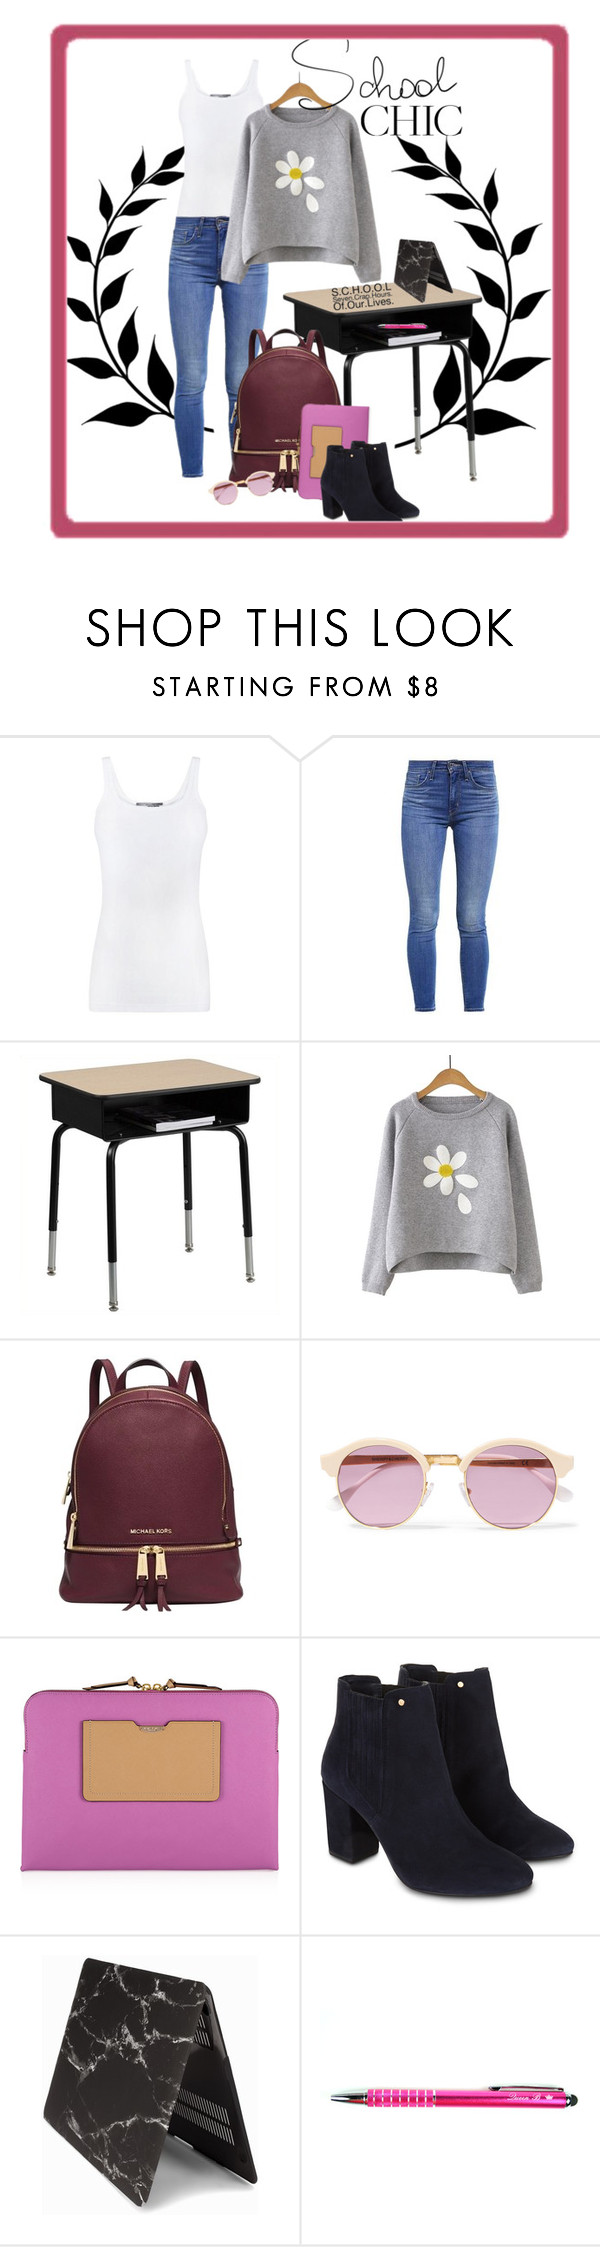 """School chic"" by britt-catlynne-weatherall on Polyvore featuring Vince, Levi's, Flash Furniture, Michael Kors, Sheriff&Cherry, Henri Bendel and Monsoon"